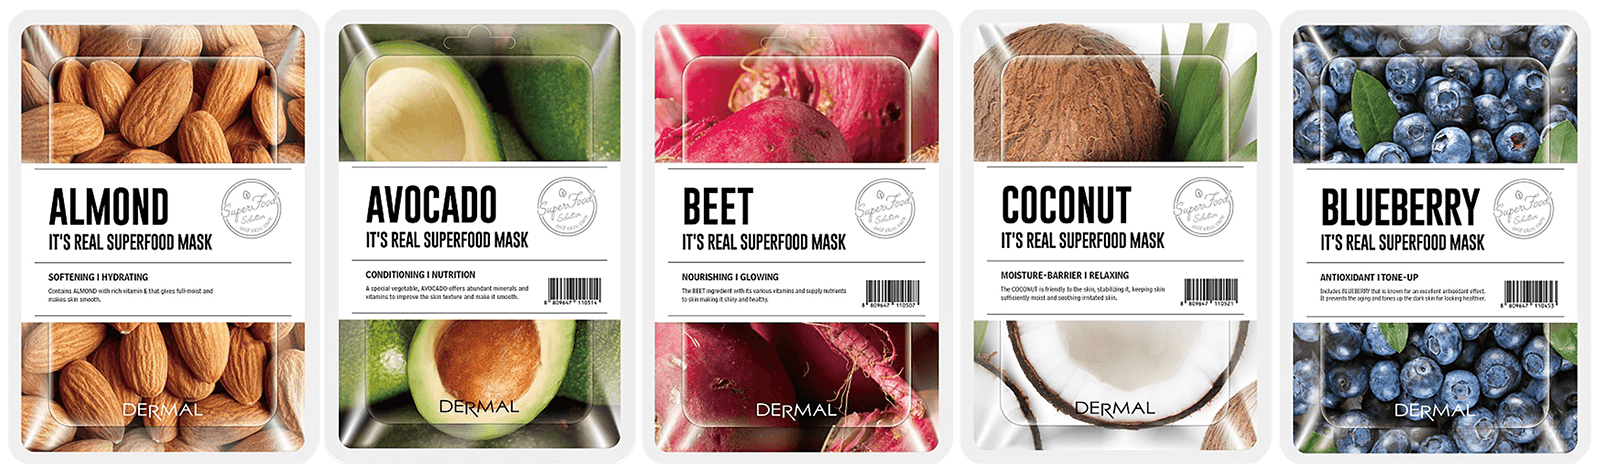 DERMAL_superfood-mask-FULL-3